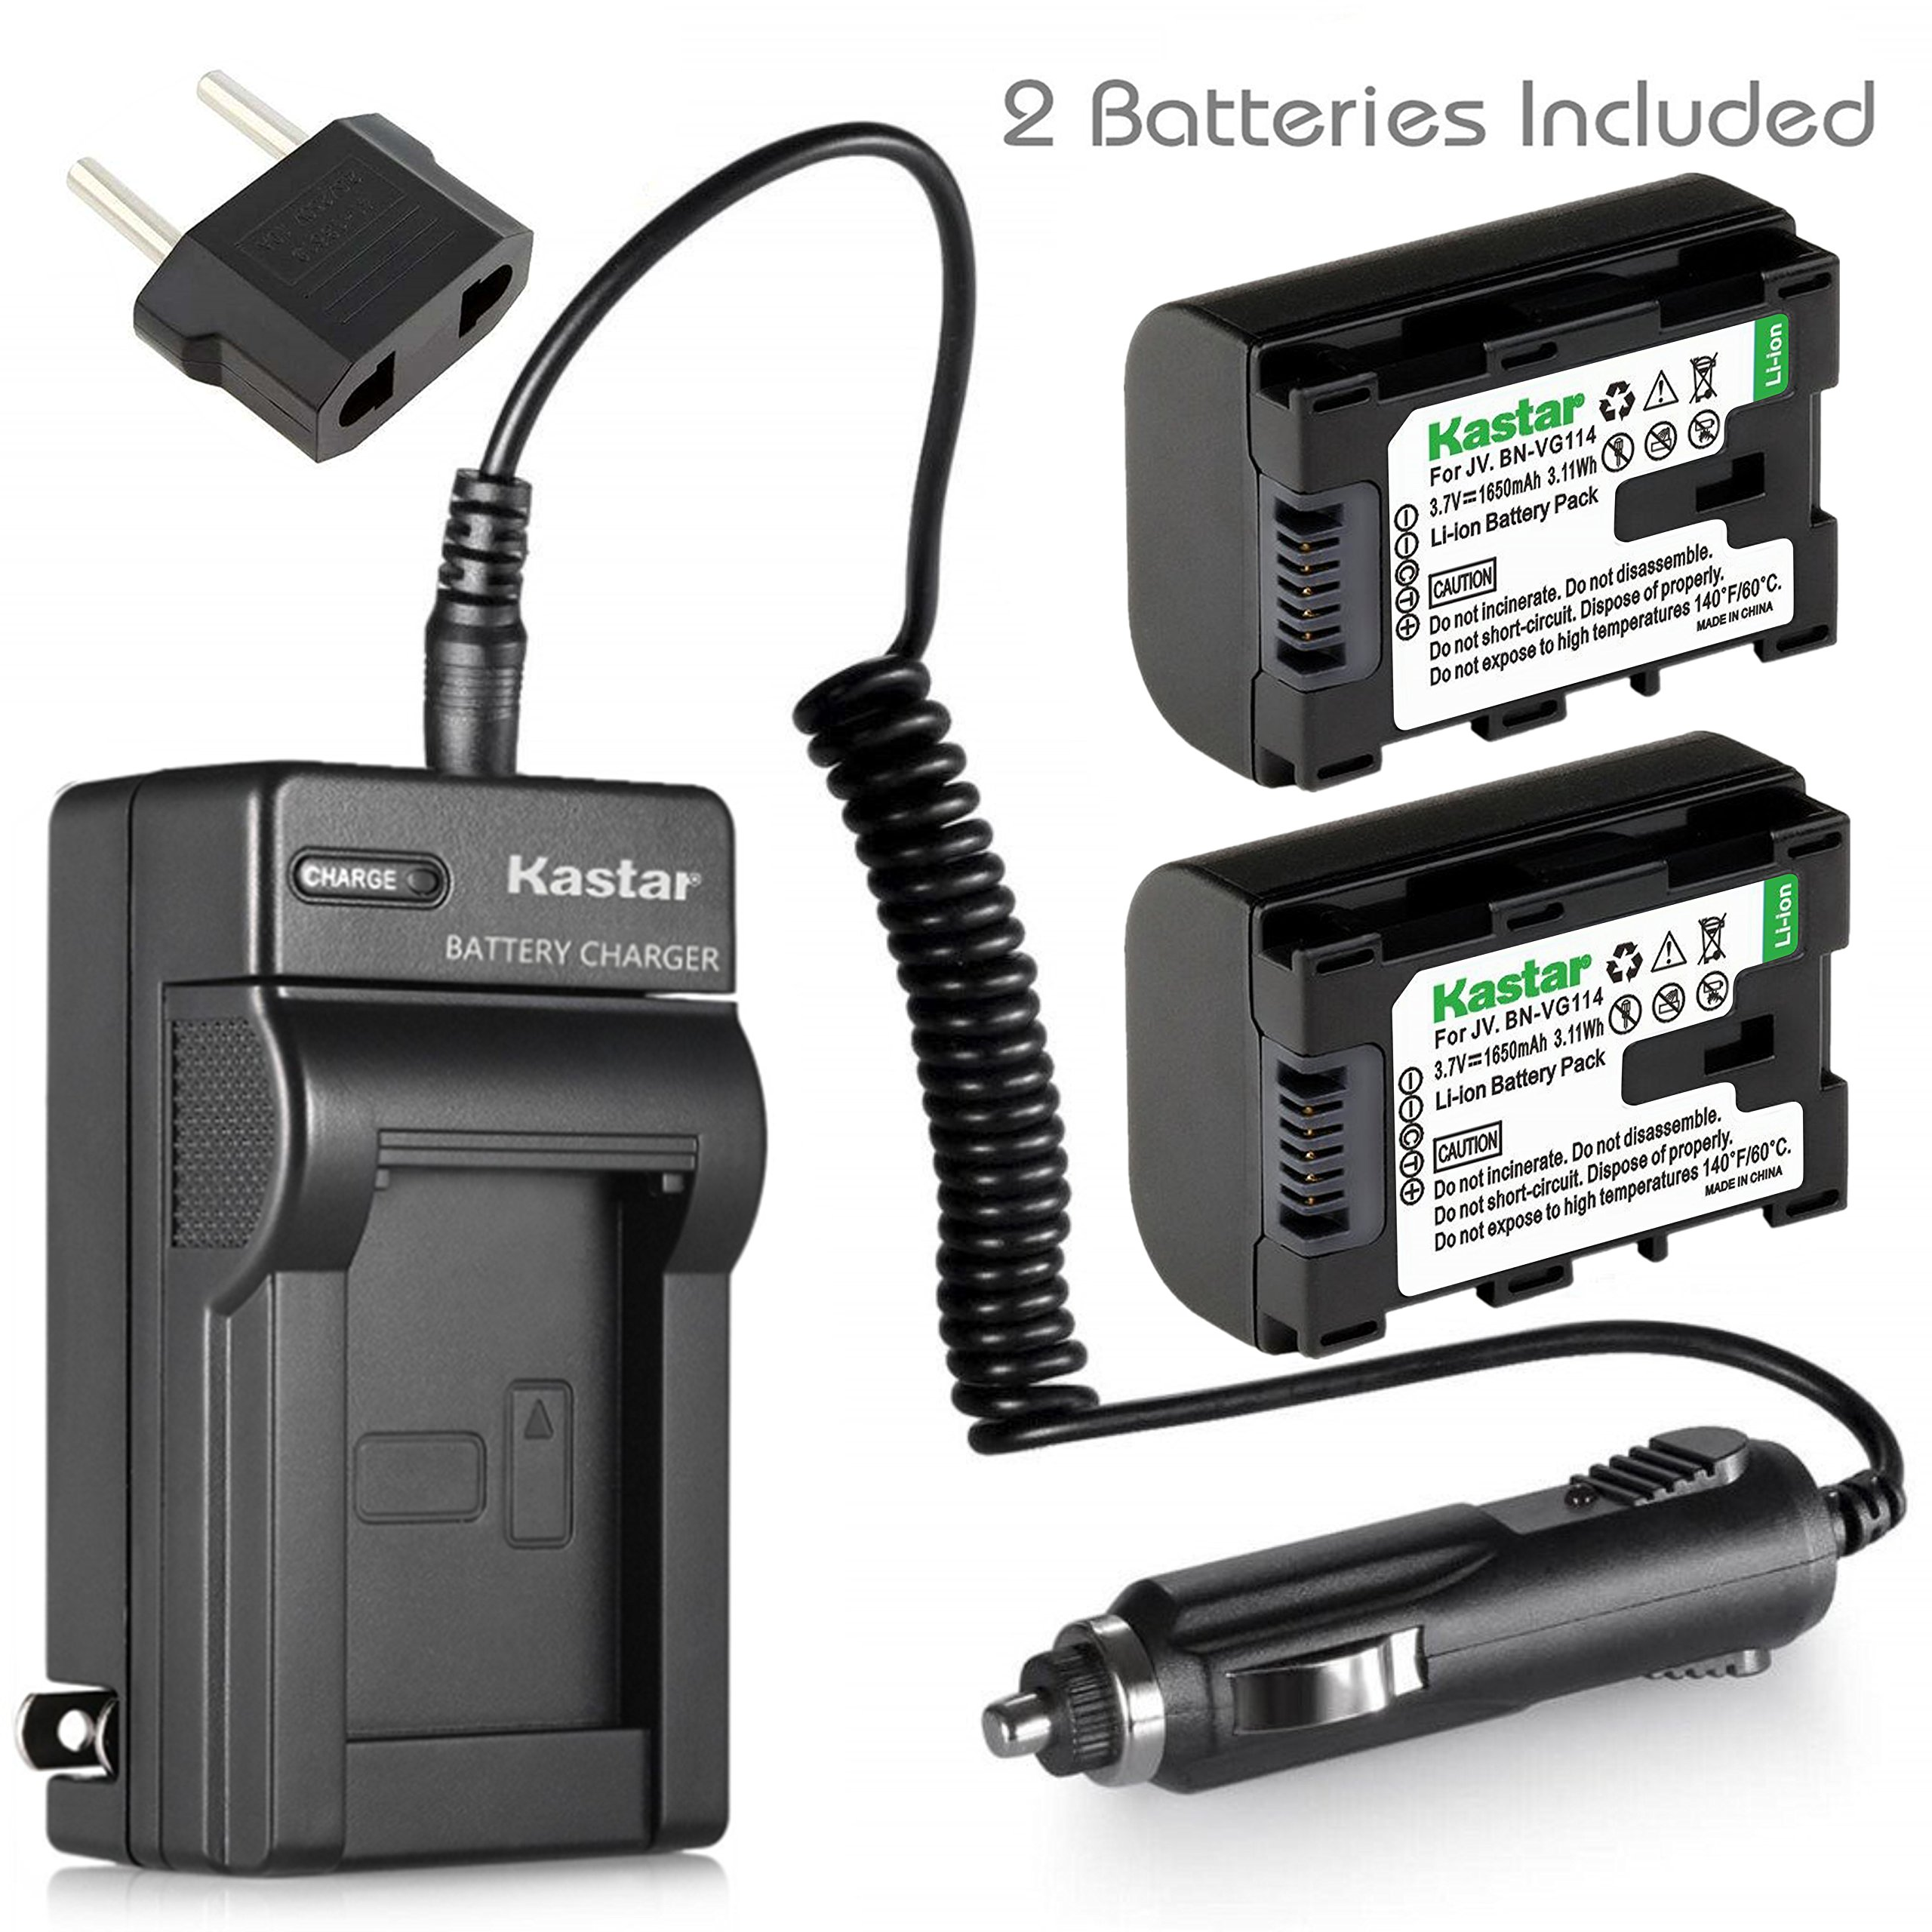 Battery (2-Pack) and Charger for JVC BN-VG107U, BN-VG108U, BN-VG114U, BN-VG121U Li-ion Rechargeable Battery Pack by Kastar